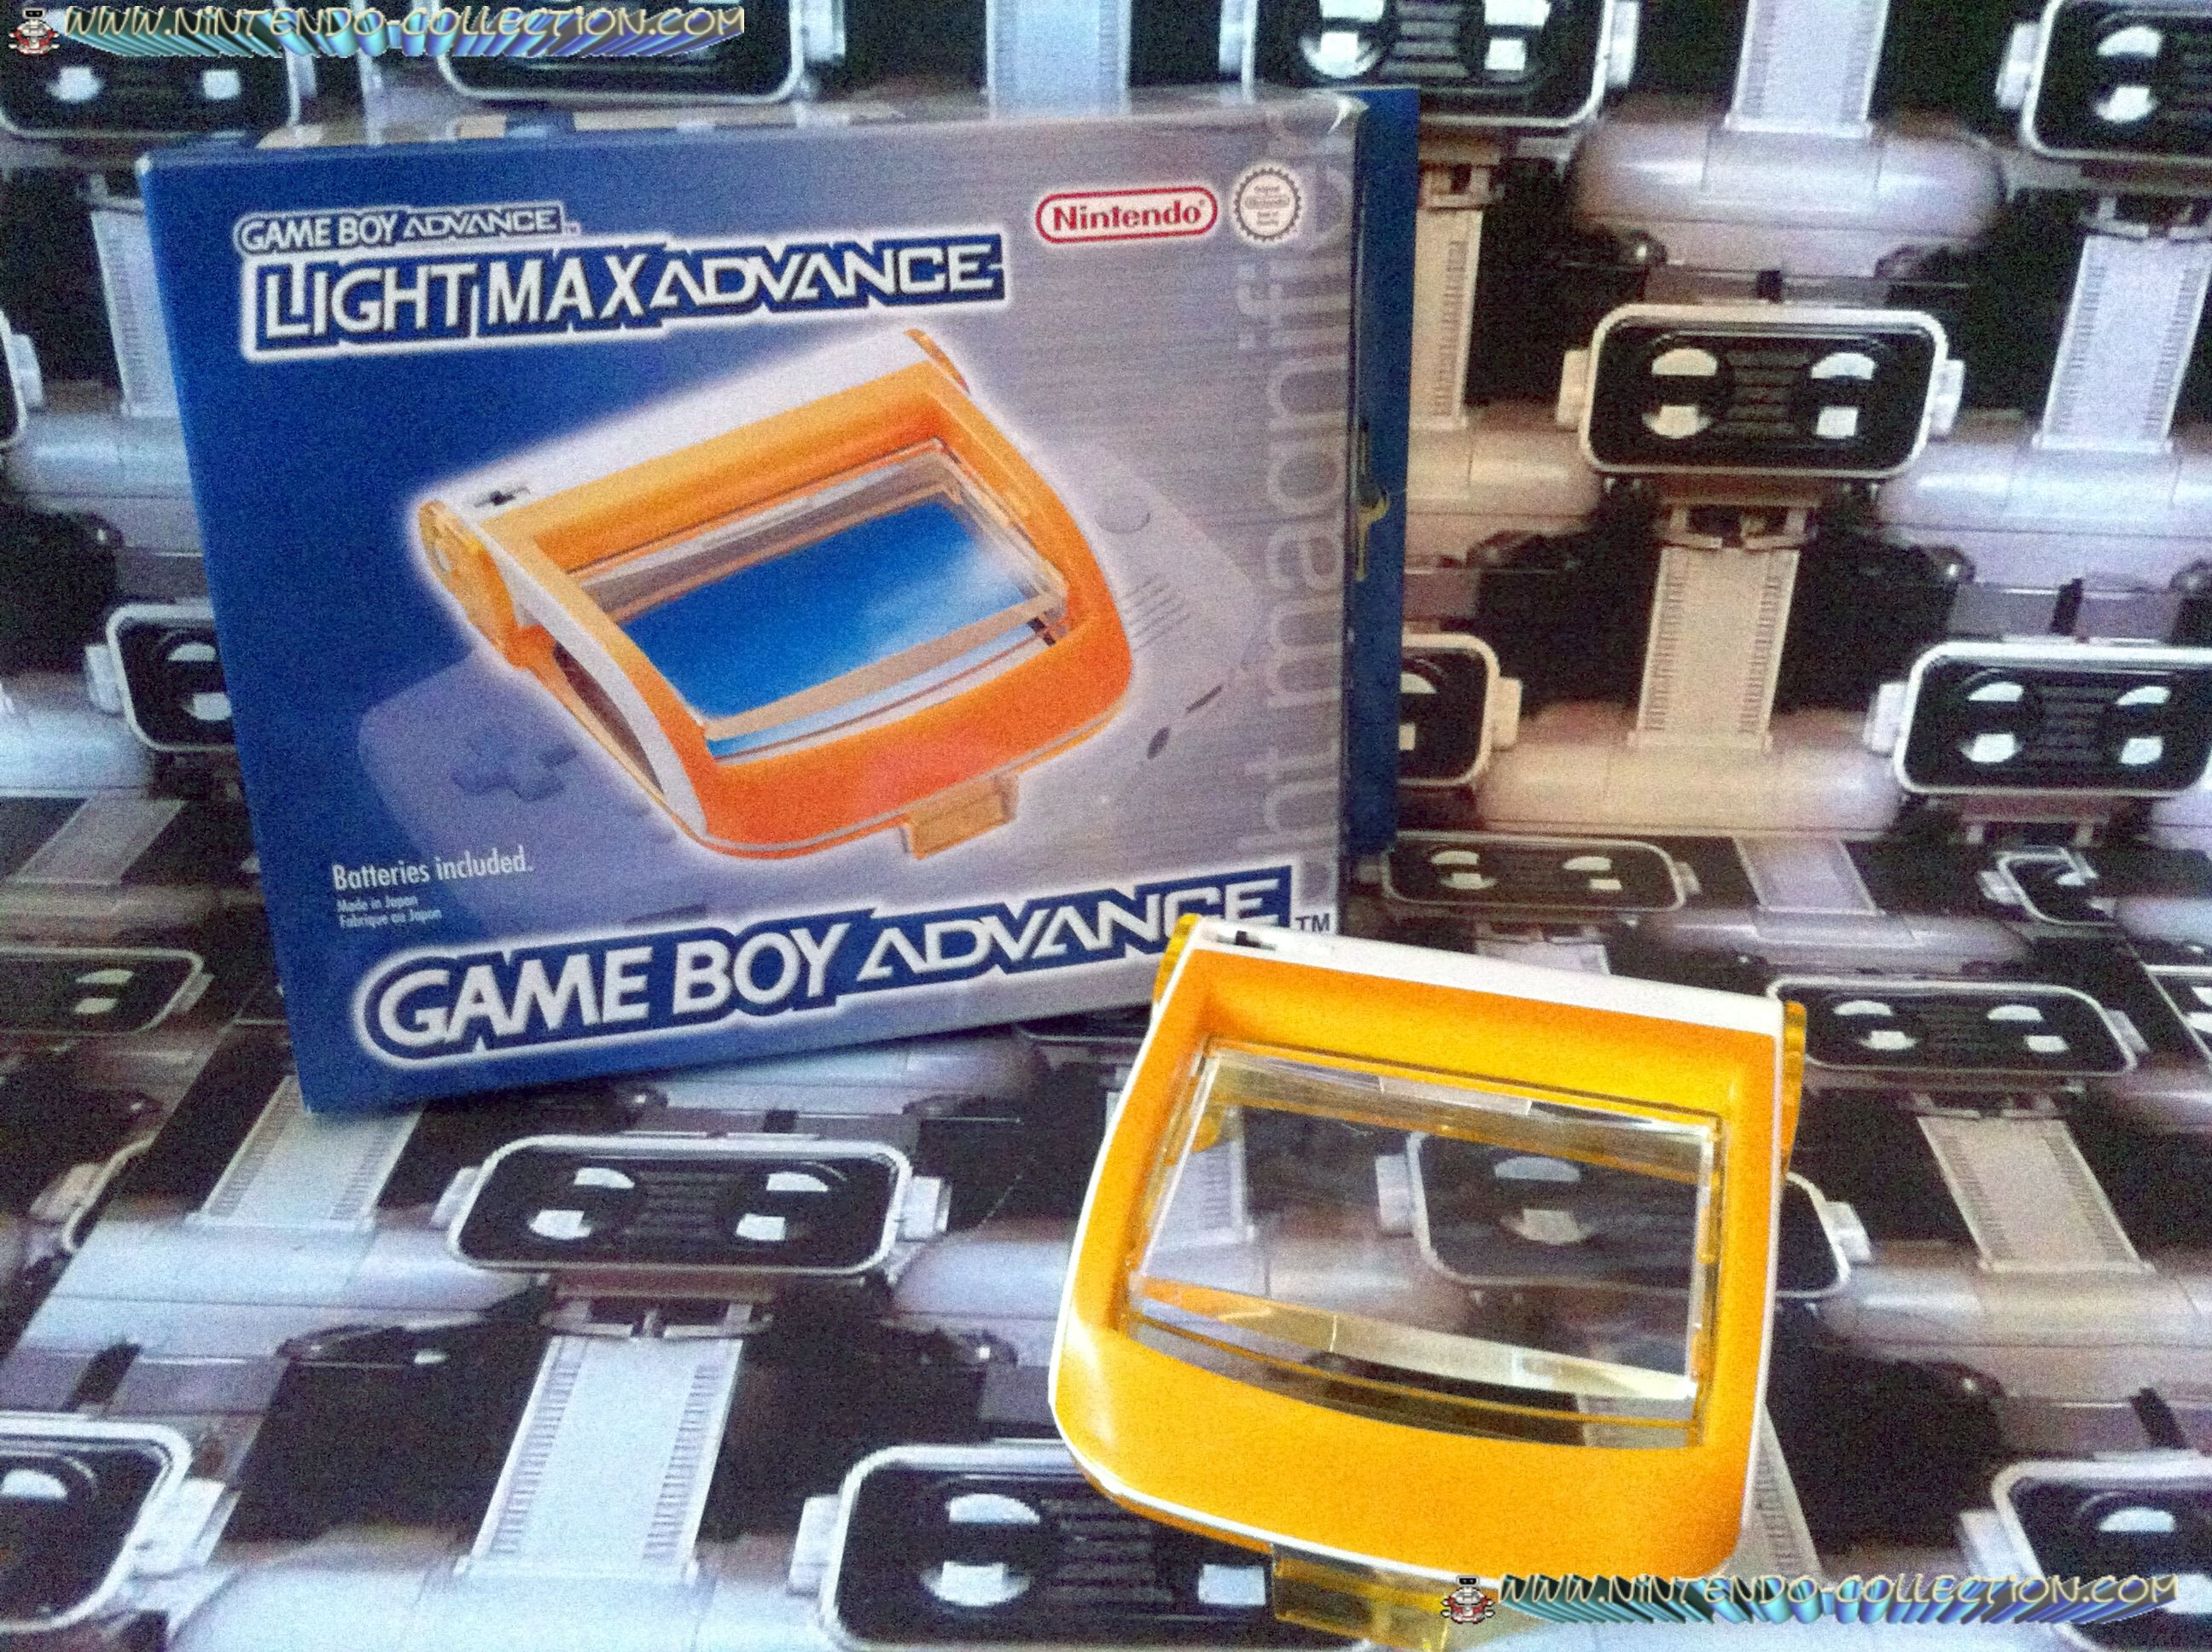 www.nintendo-collection.com - Gameboy Advance SP Accessory Accessoire Loupe Light Max Advance